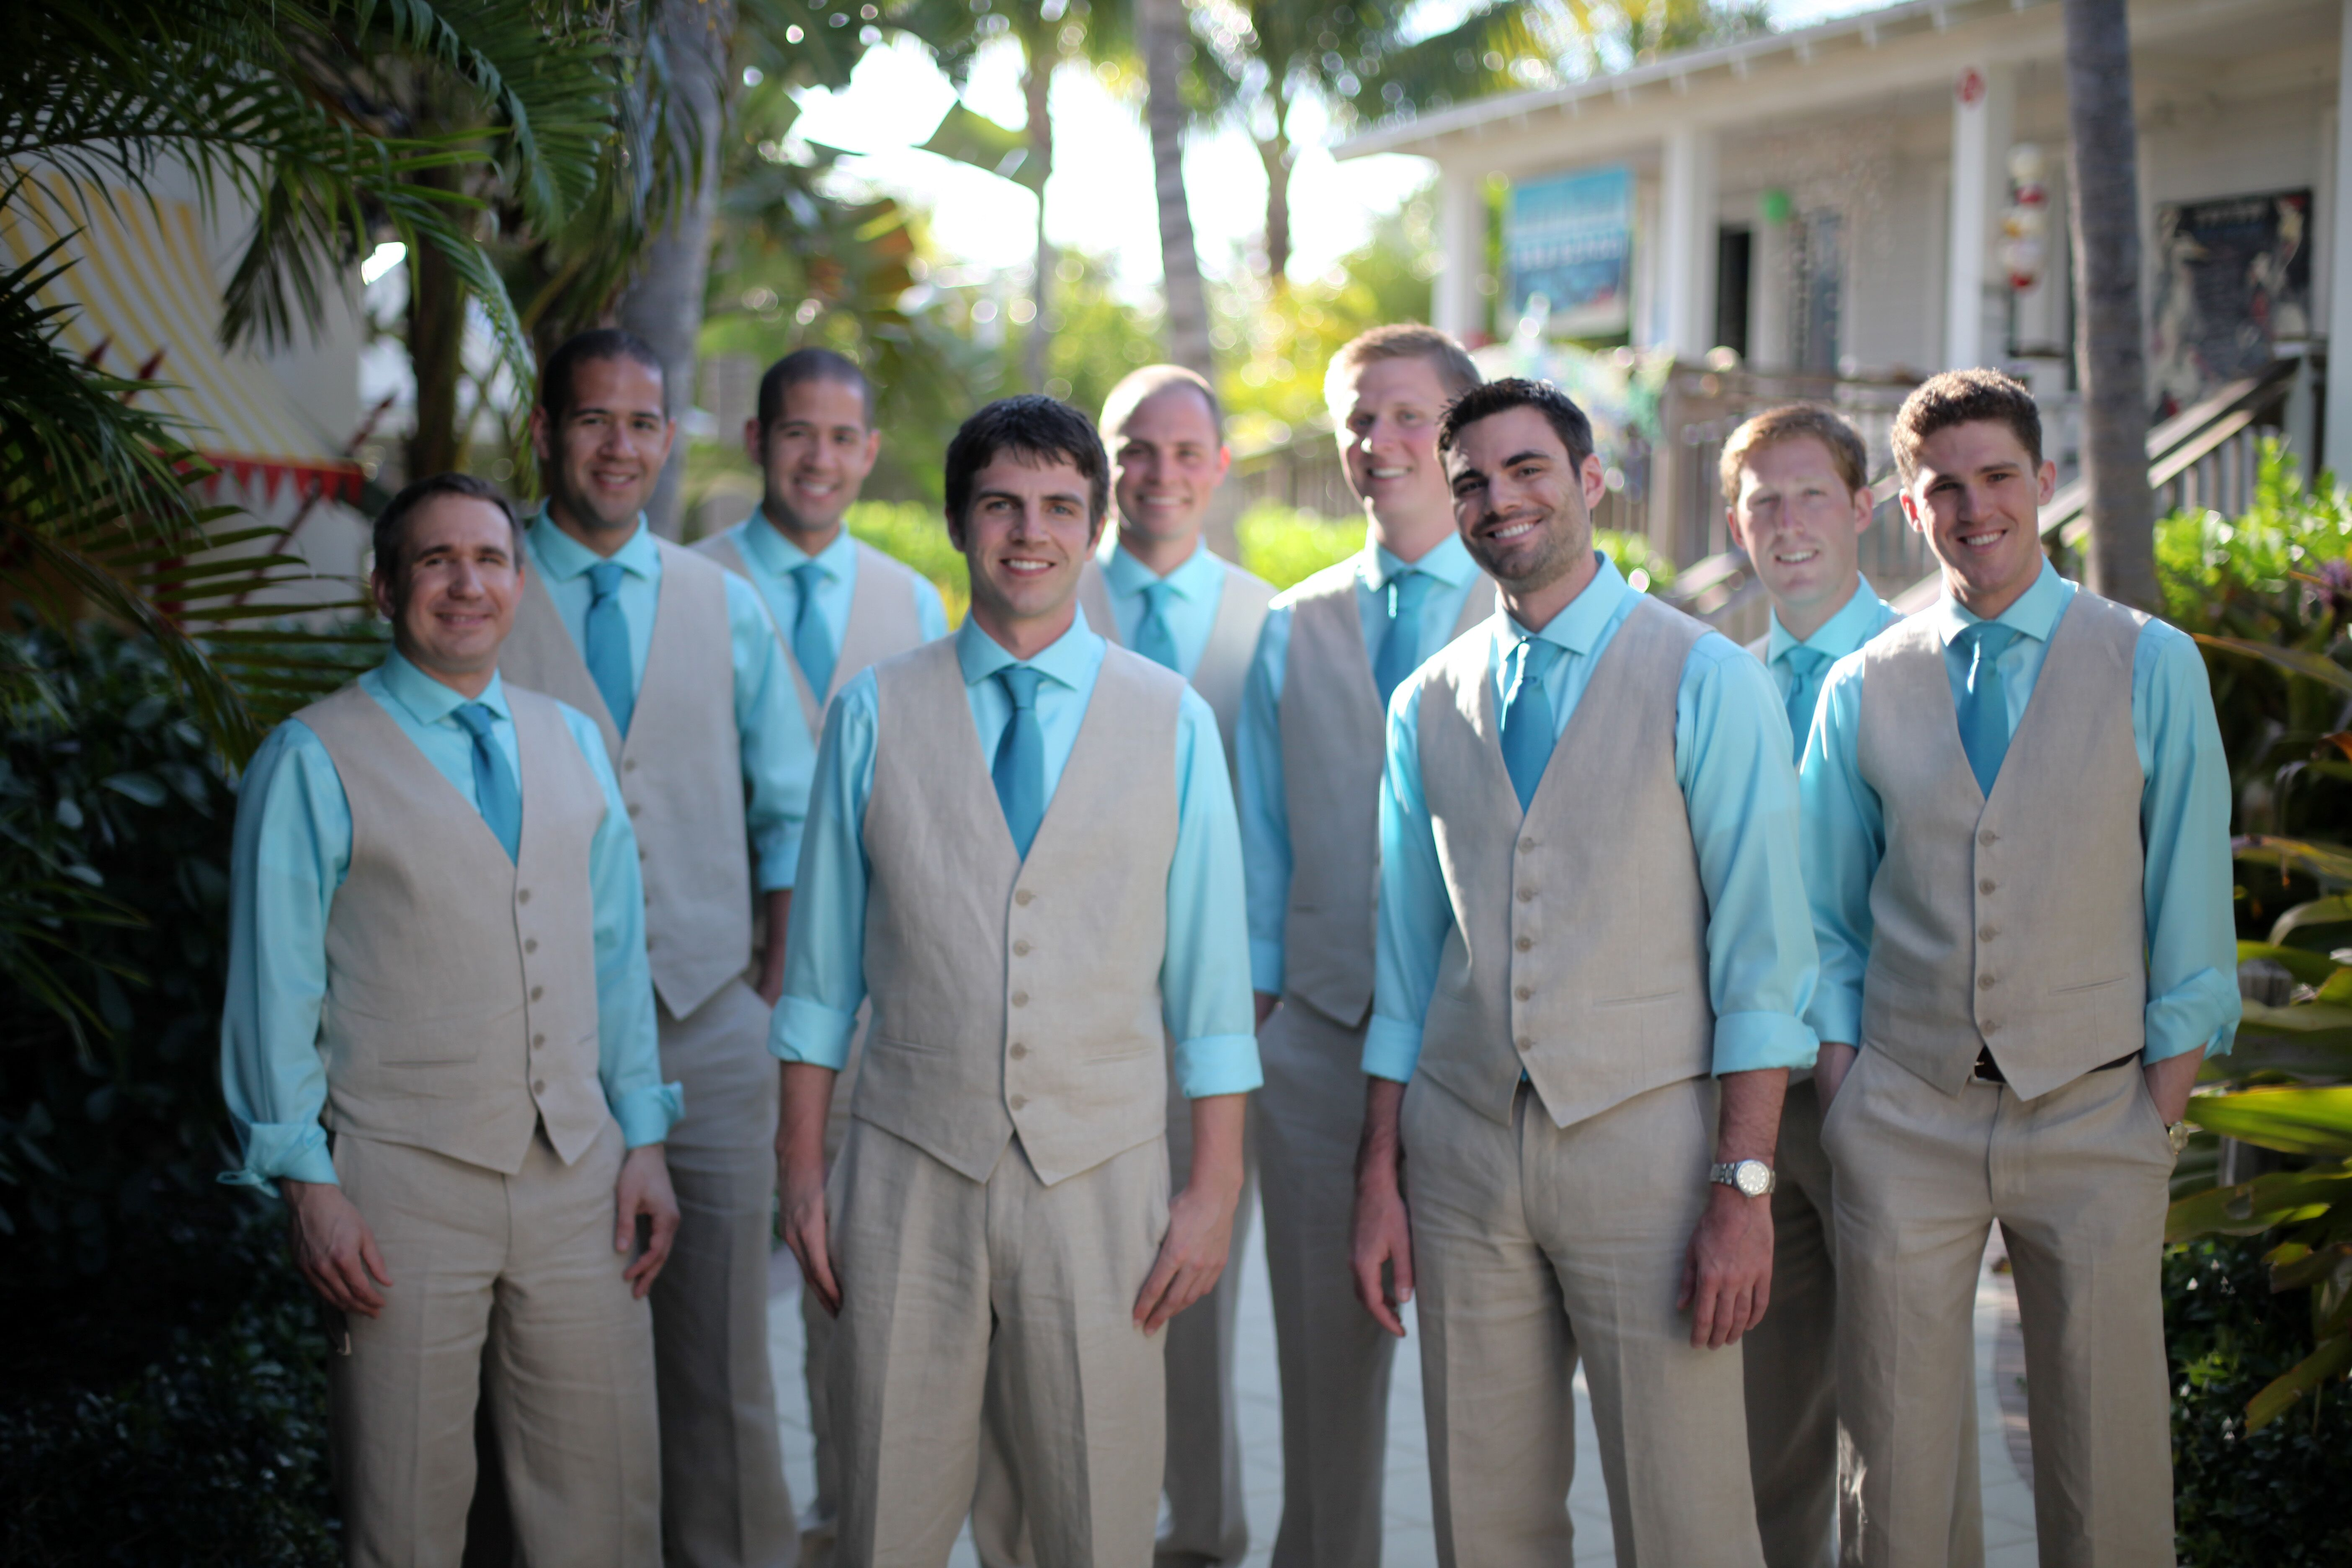 Tan Vests and Pants With Blue Shirts and Ties